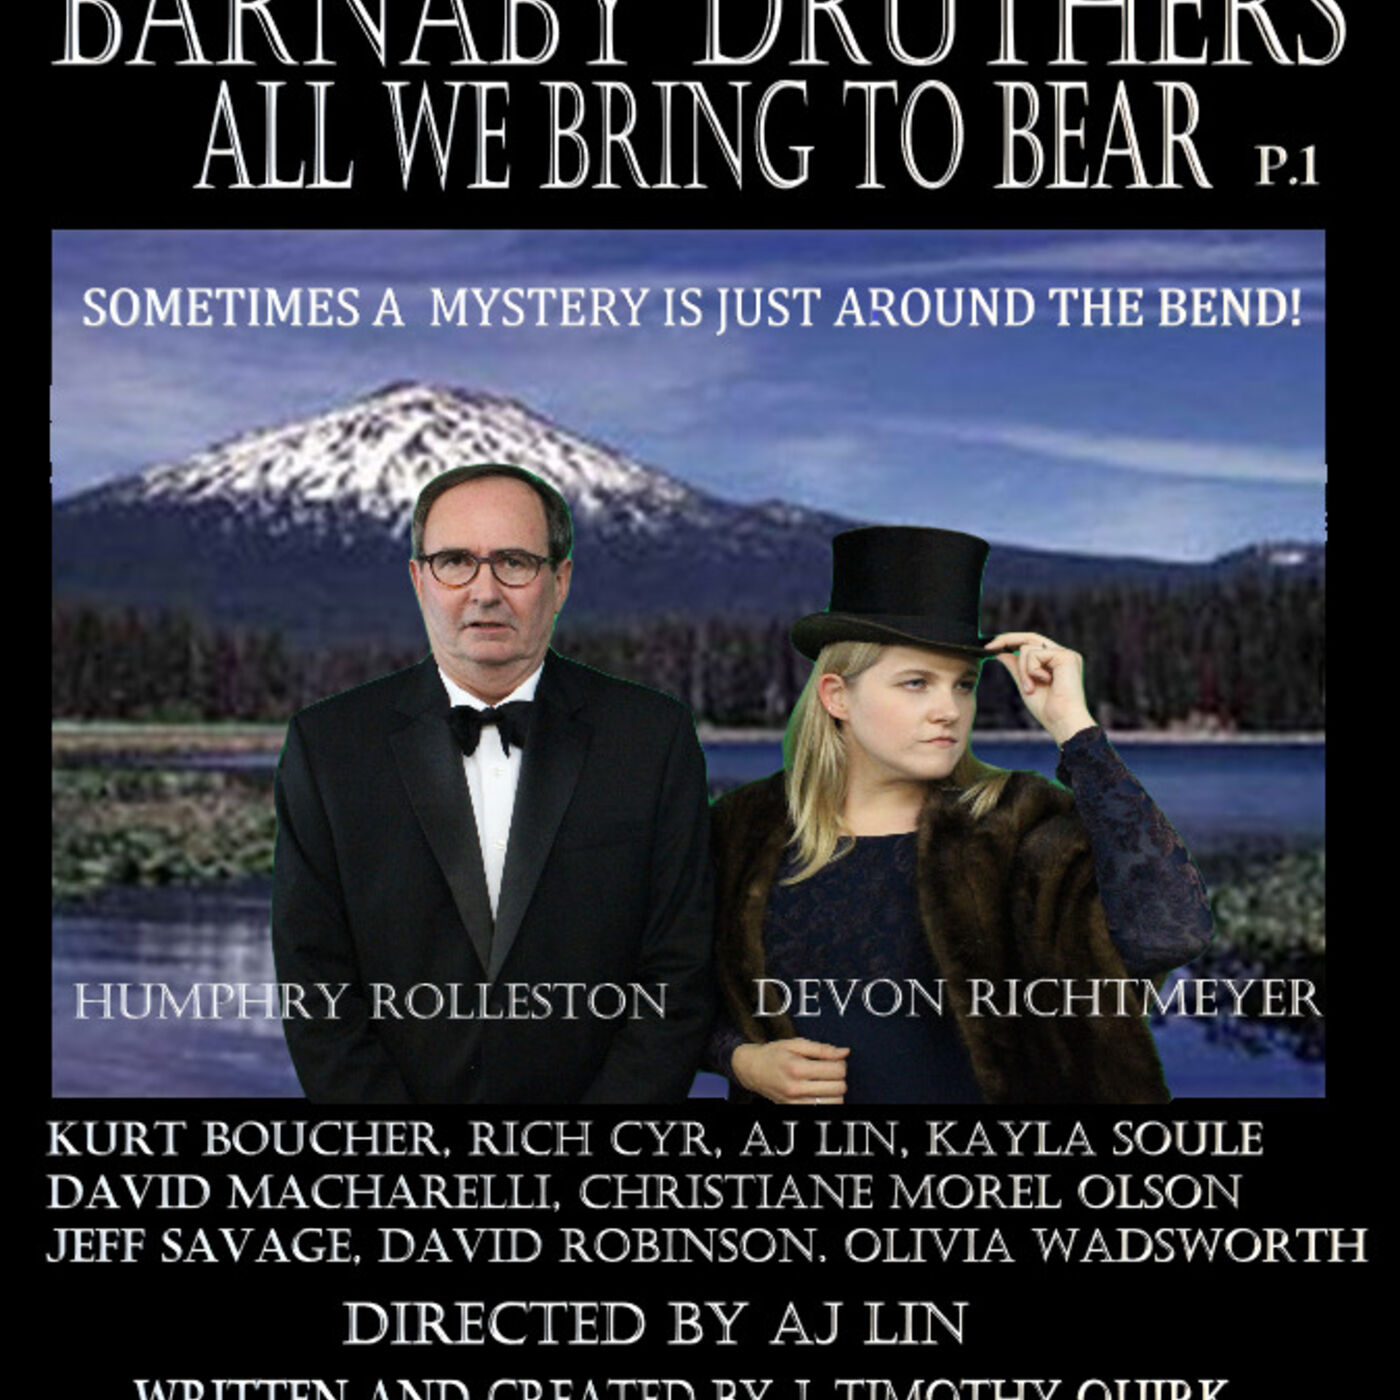 Episode 26: Barnaby Druthers: All We Bring to Bear Part One